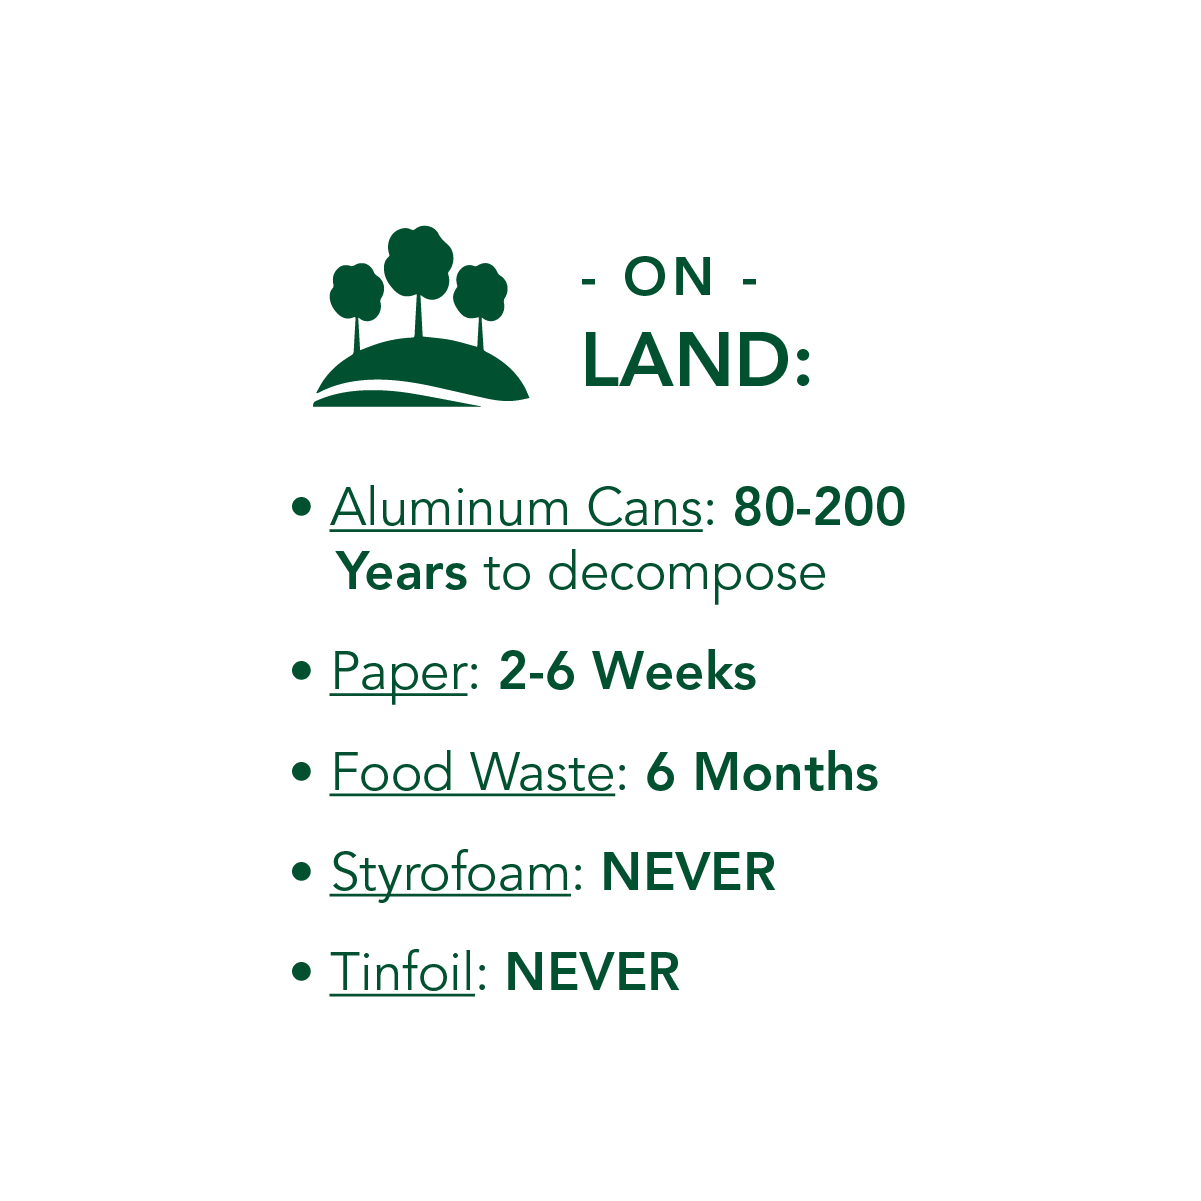 Litter Infographic Icon 7.png